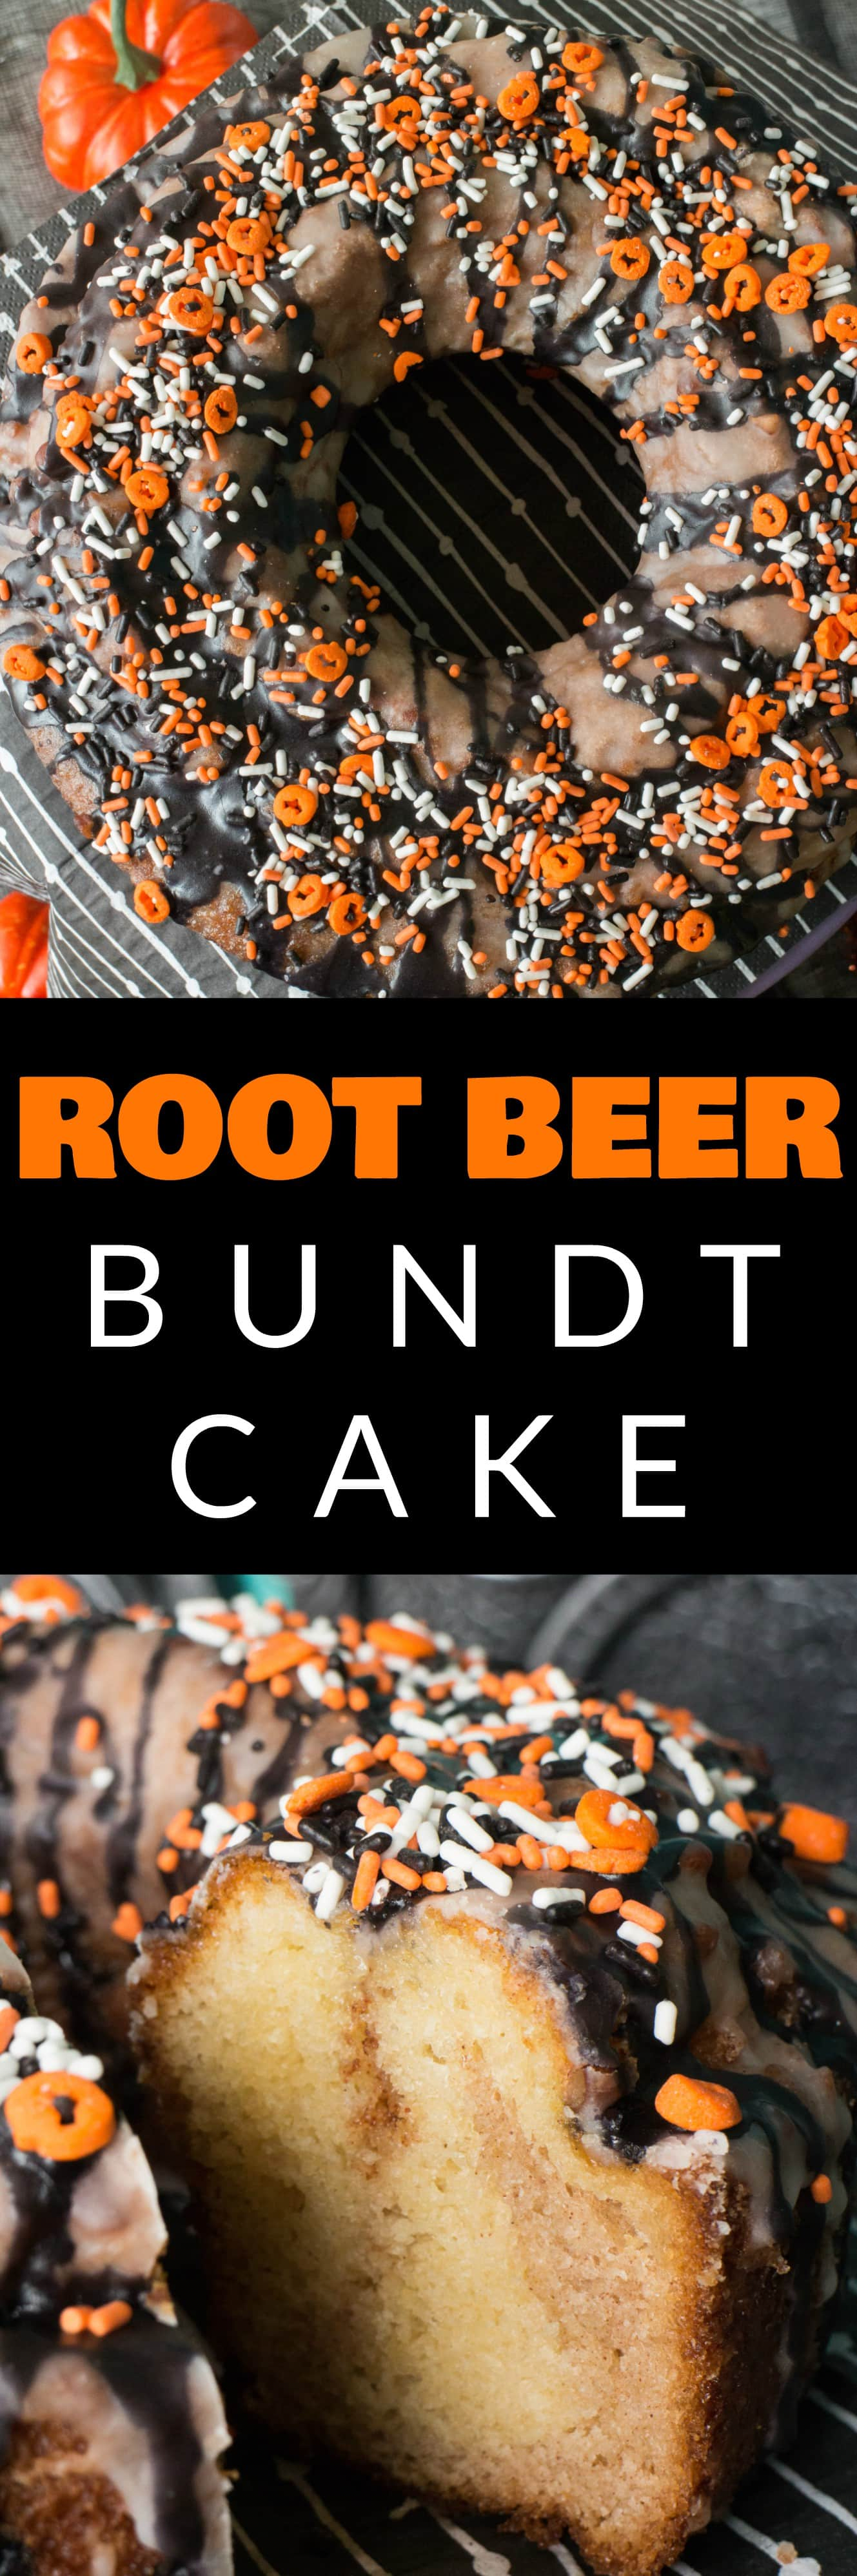 Root Beer Halloween Bundt Cake recipe!  This cake is easy to make and is so moist inside! I decorate it with a black sugar glaze and sprinkles on top for Halloween!  It's easy to use this recipe for a Christmas bundt cake too!